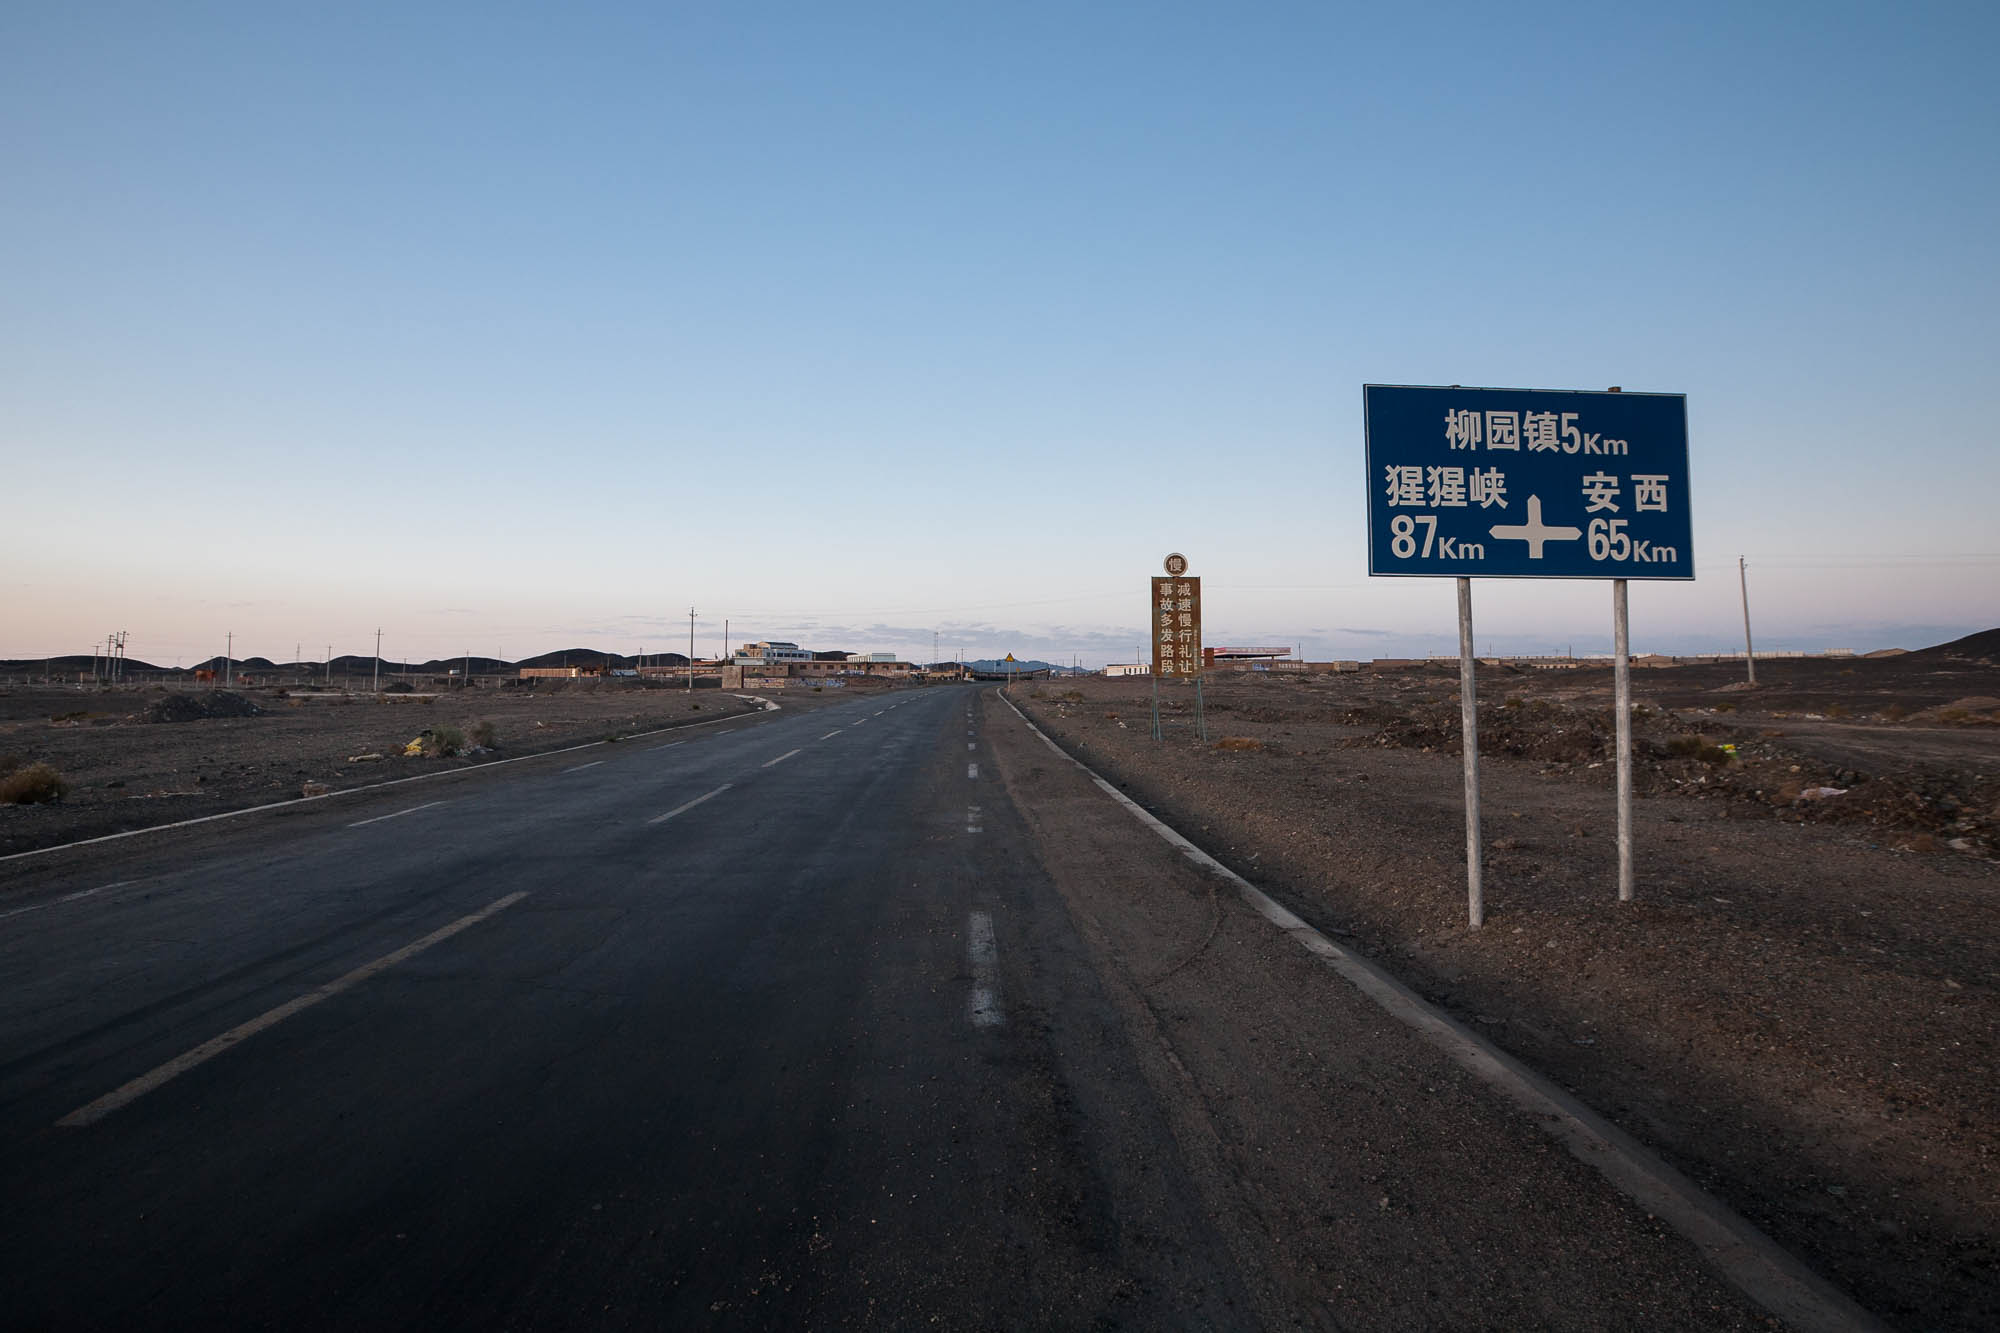 5km to Liuyuan